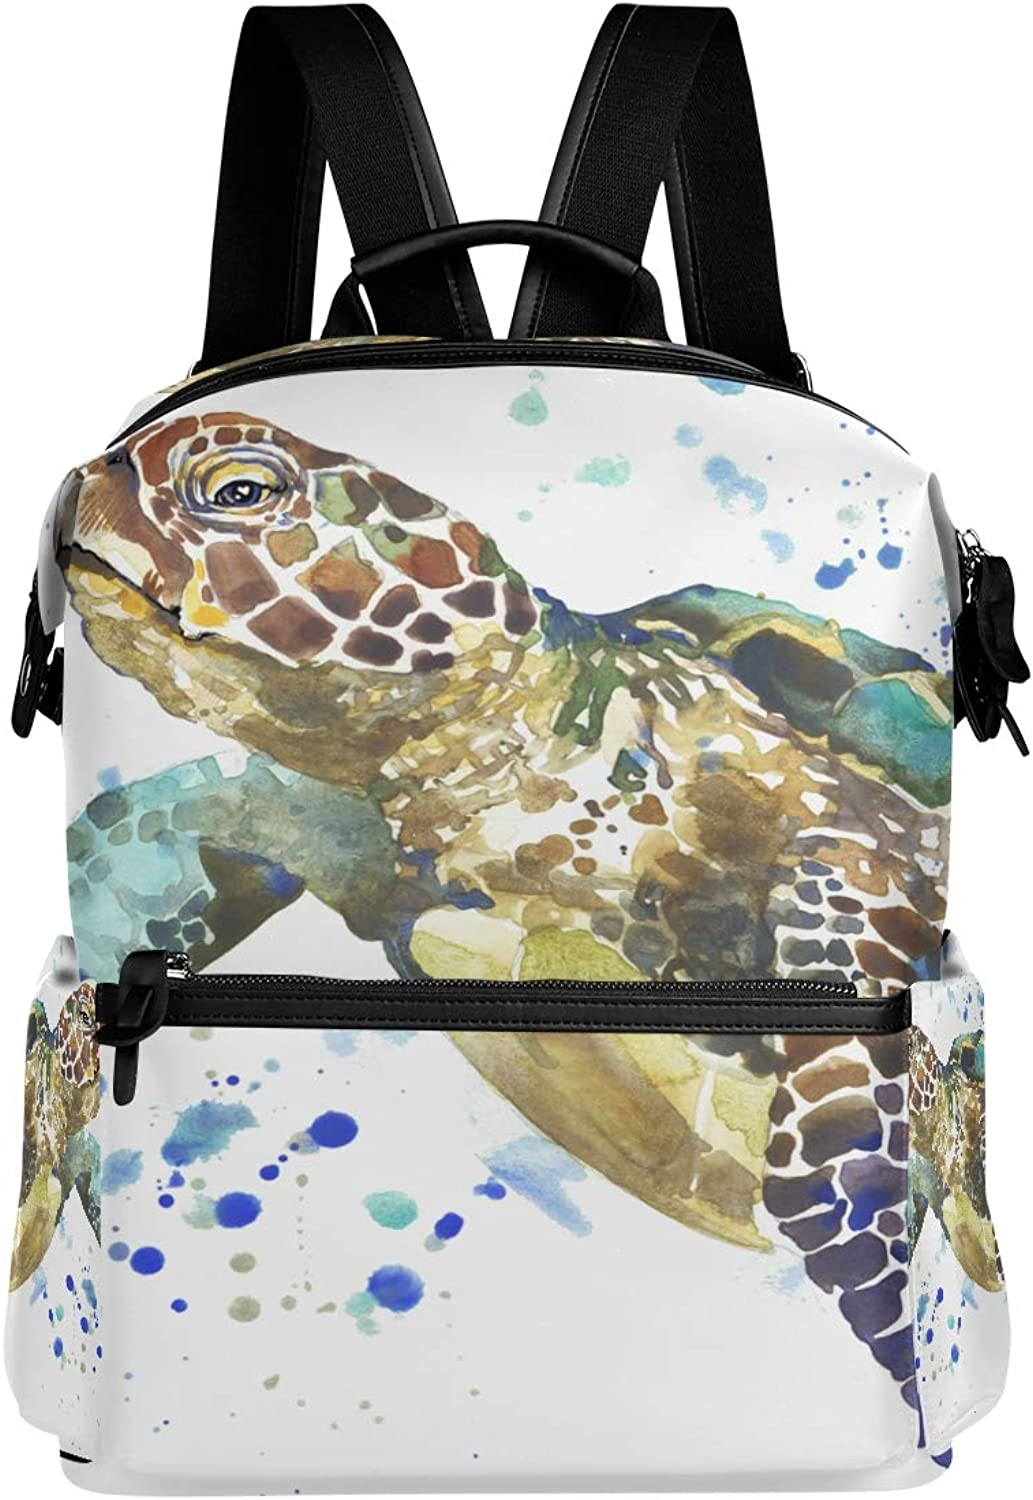 TFONE Watercolor Ocean Animal Sea Turtle Backpack Multifunction Durable Lightweight Book Bag Hiking Travel Daypack Casual Bags